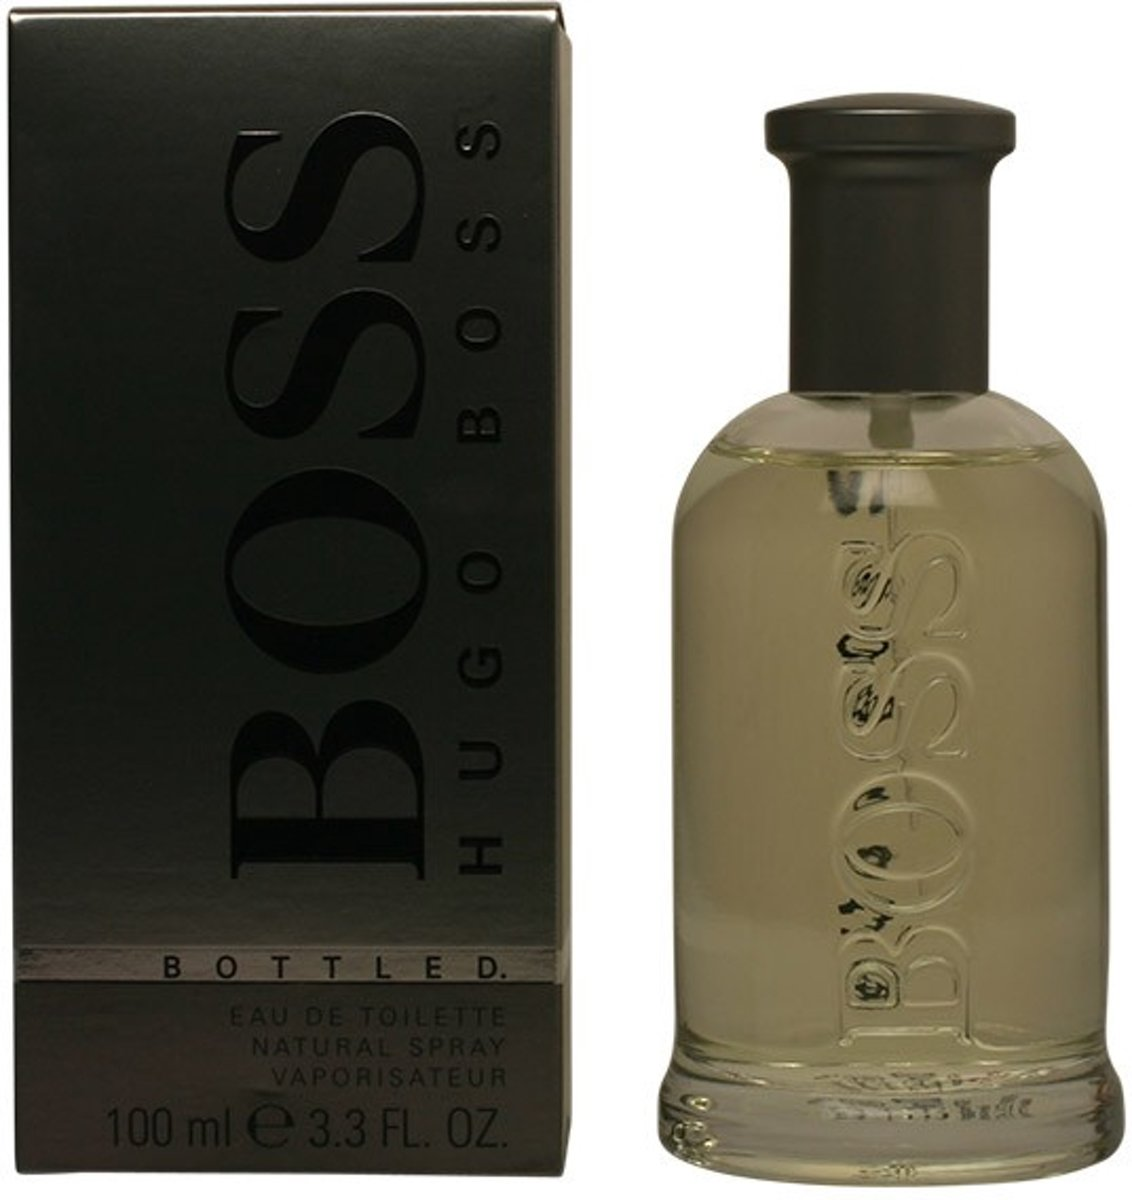 MULTI BUNDEL 2 stuks BOSS BOTTLED eau de toilette spray 100 ml